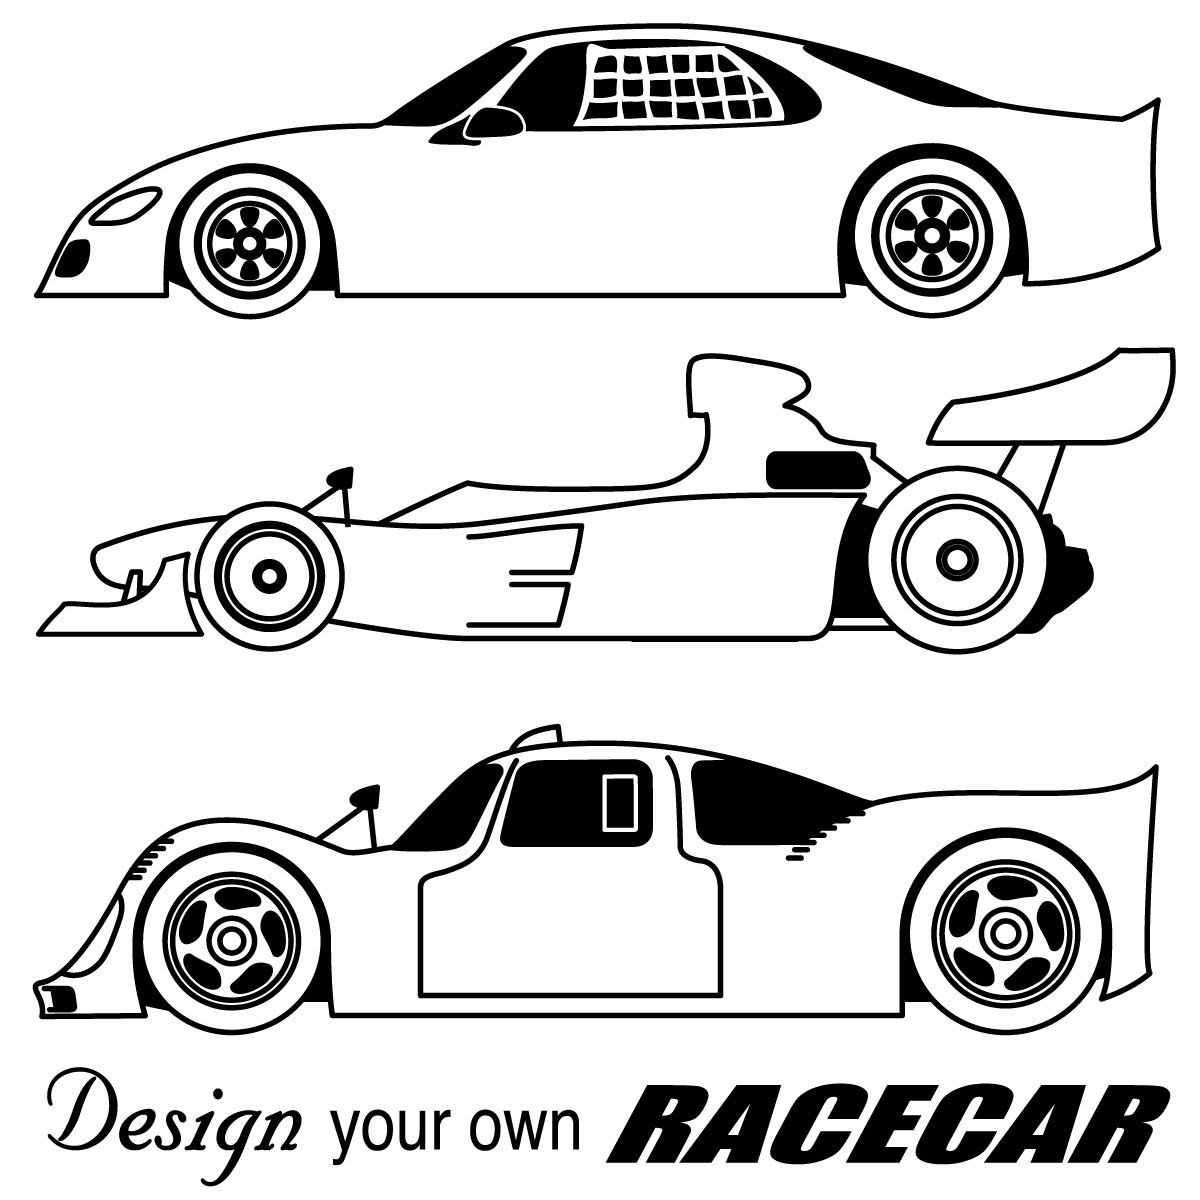 Race cars coloring pages free large images coloring for Make your own coloring pages for free